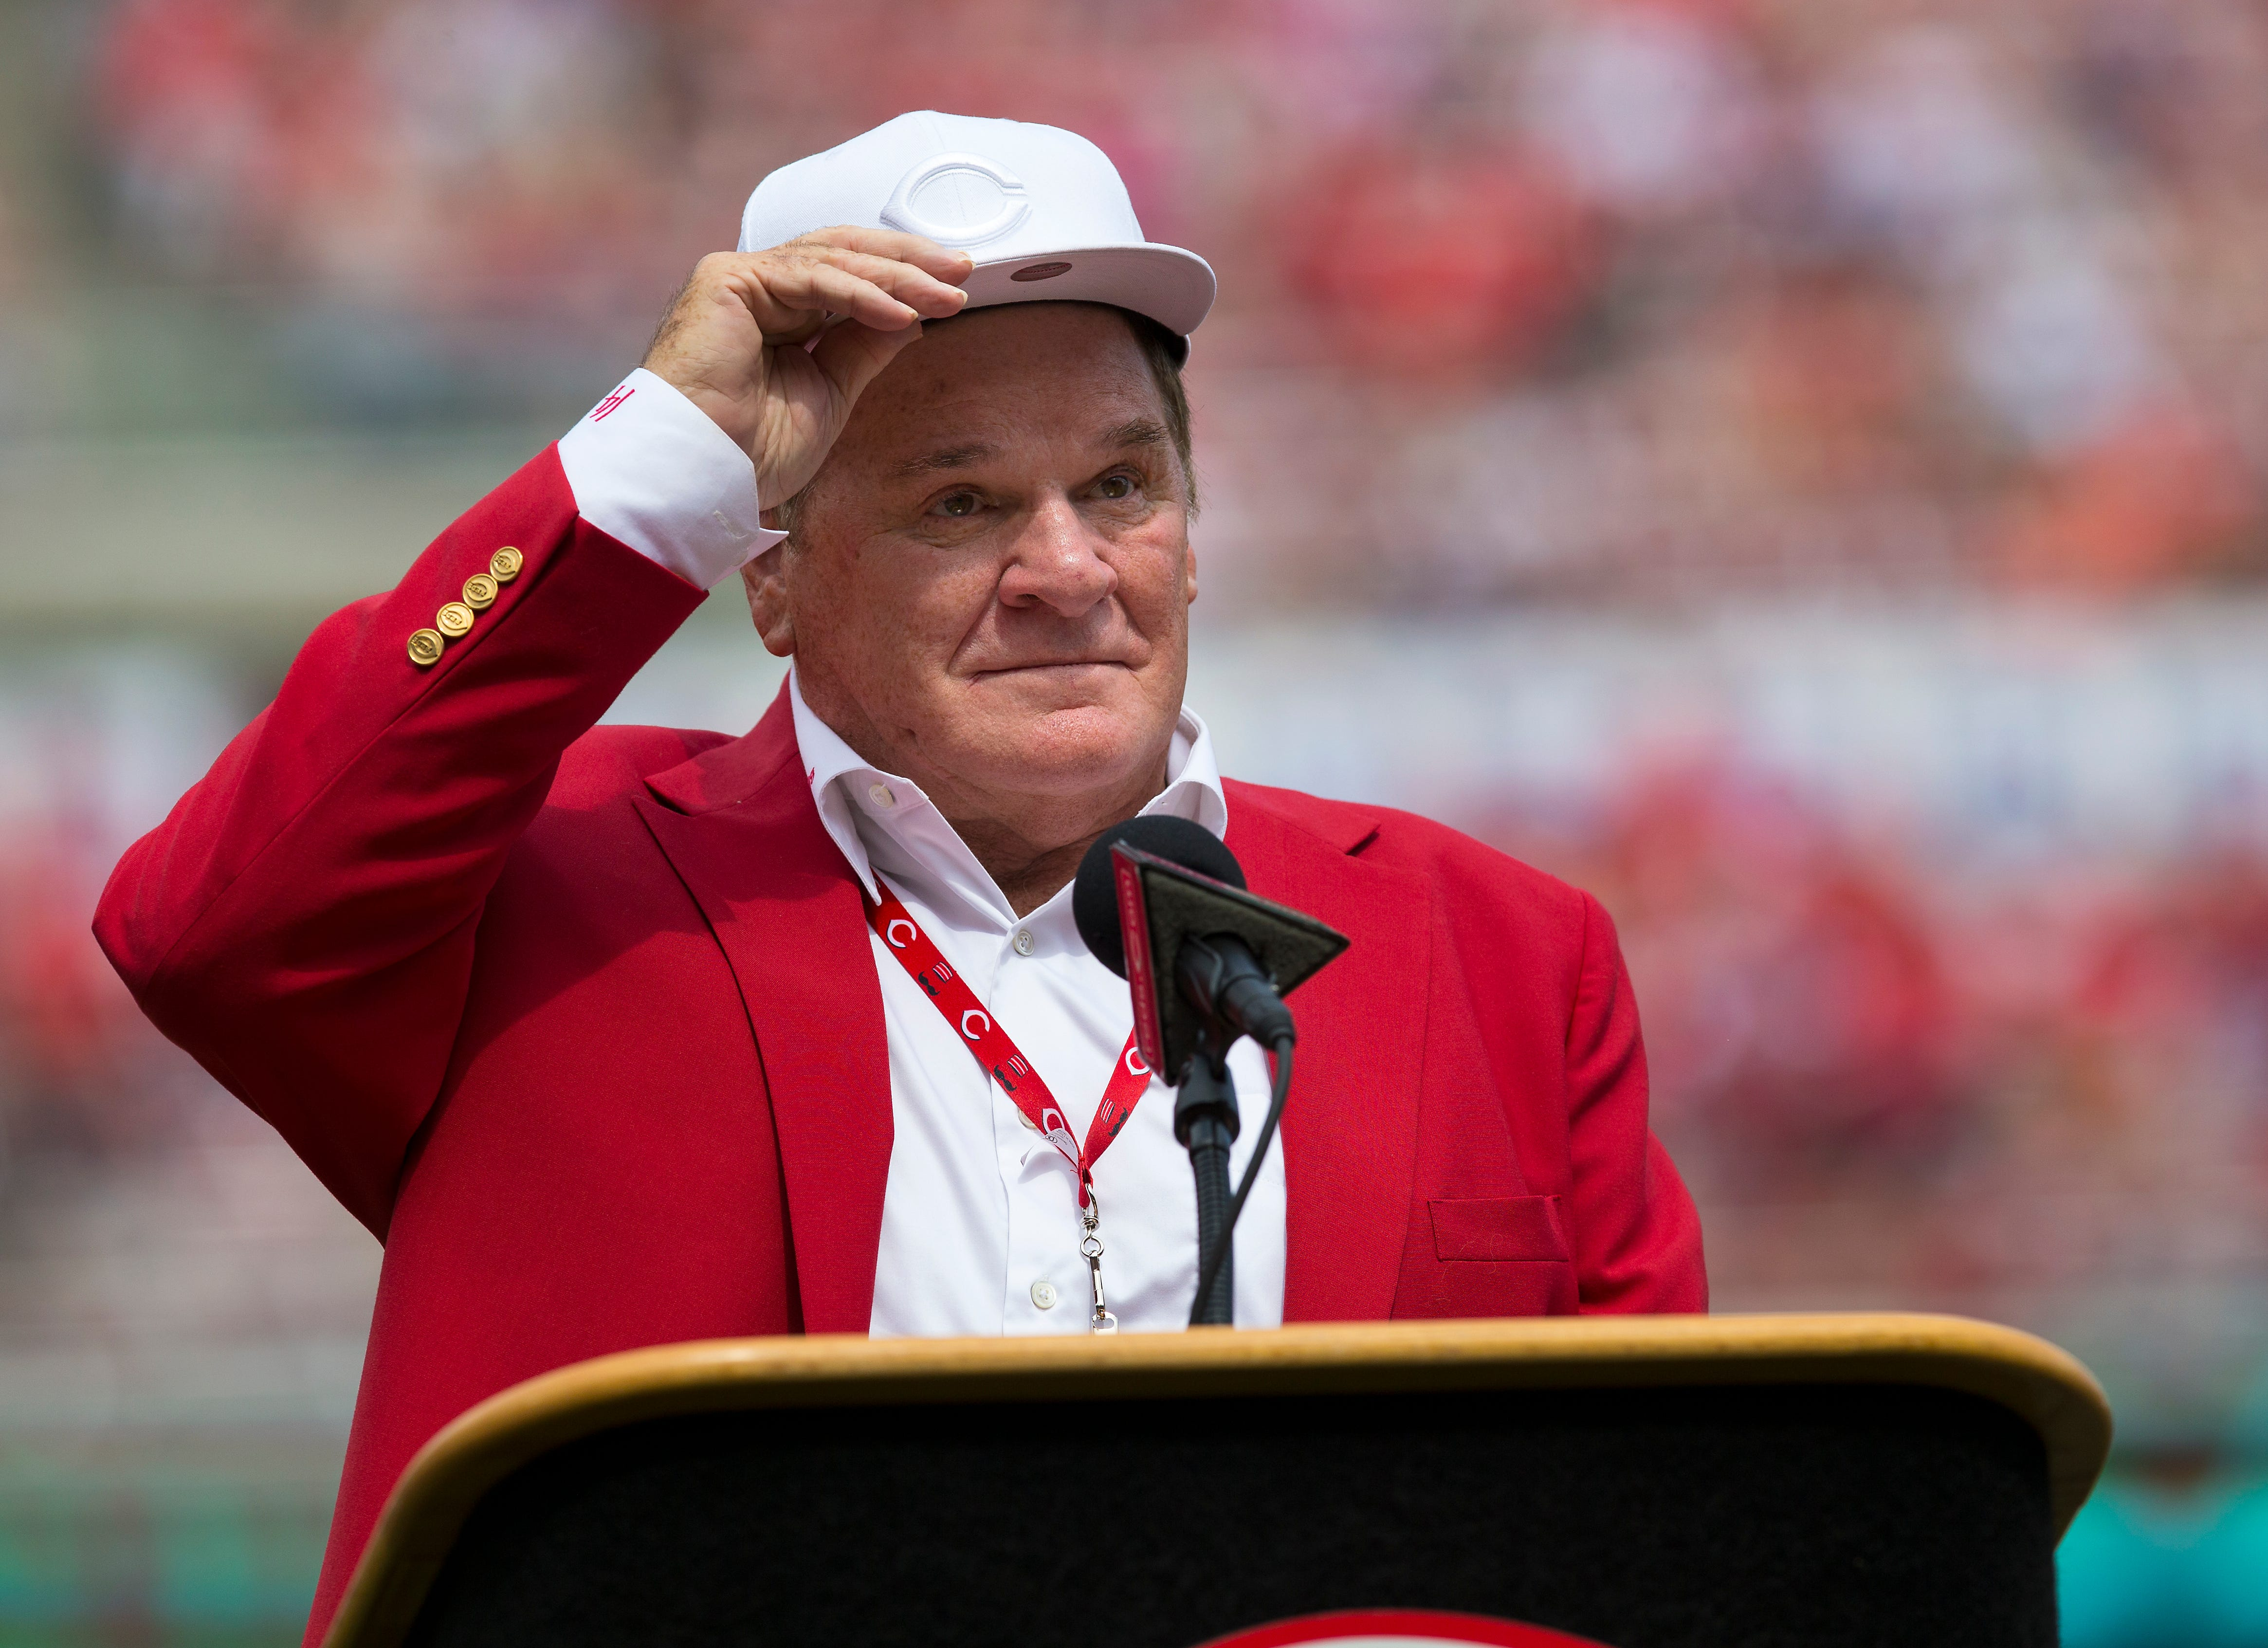 Pete Rose: Betting on baseball was 'the only mistake I've ever made in my life'